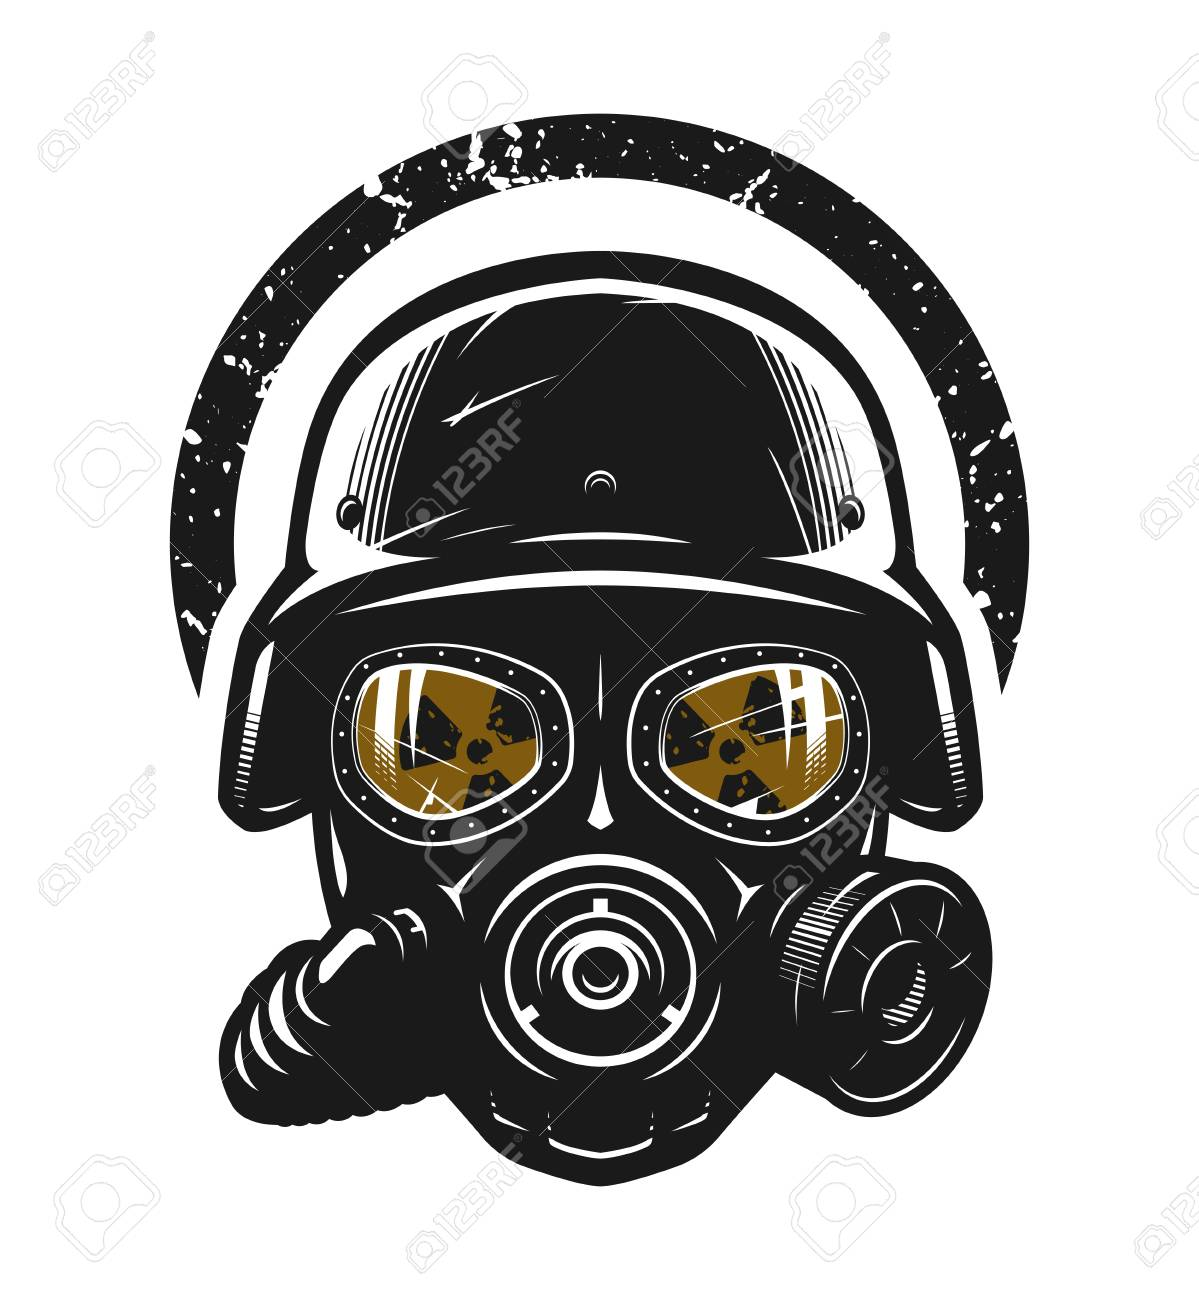 Helmet and gas mask, radiation protection - 124960834